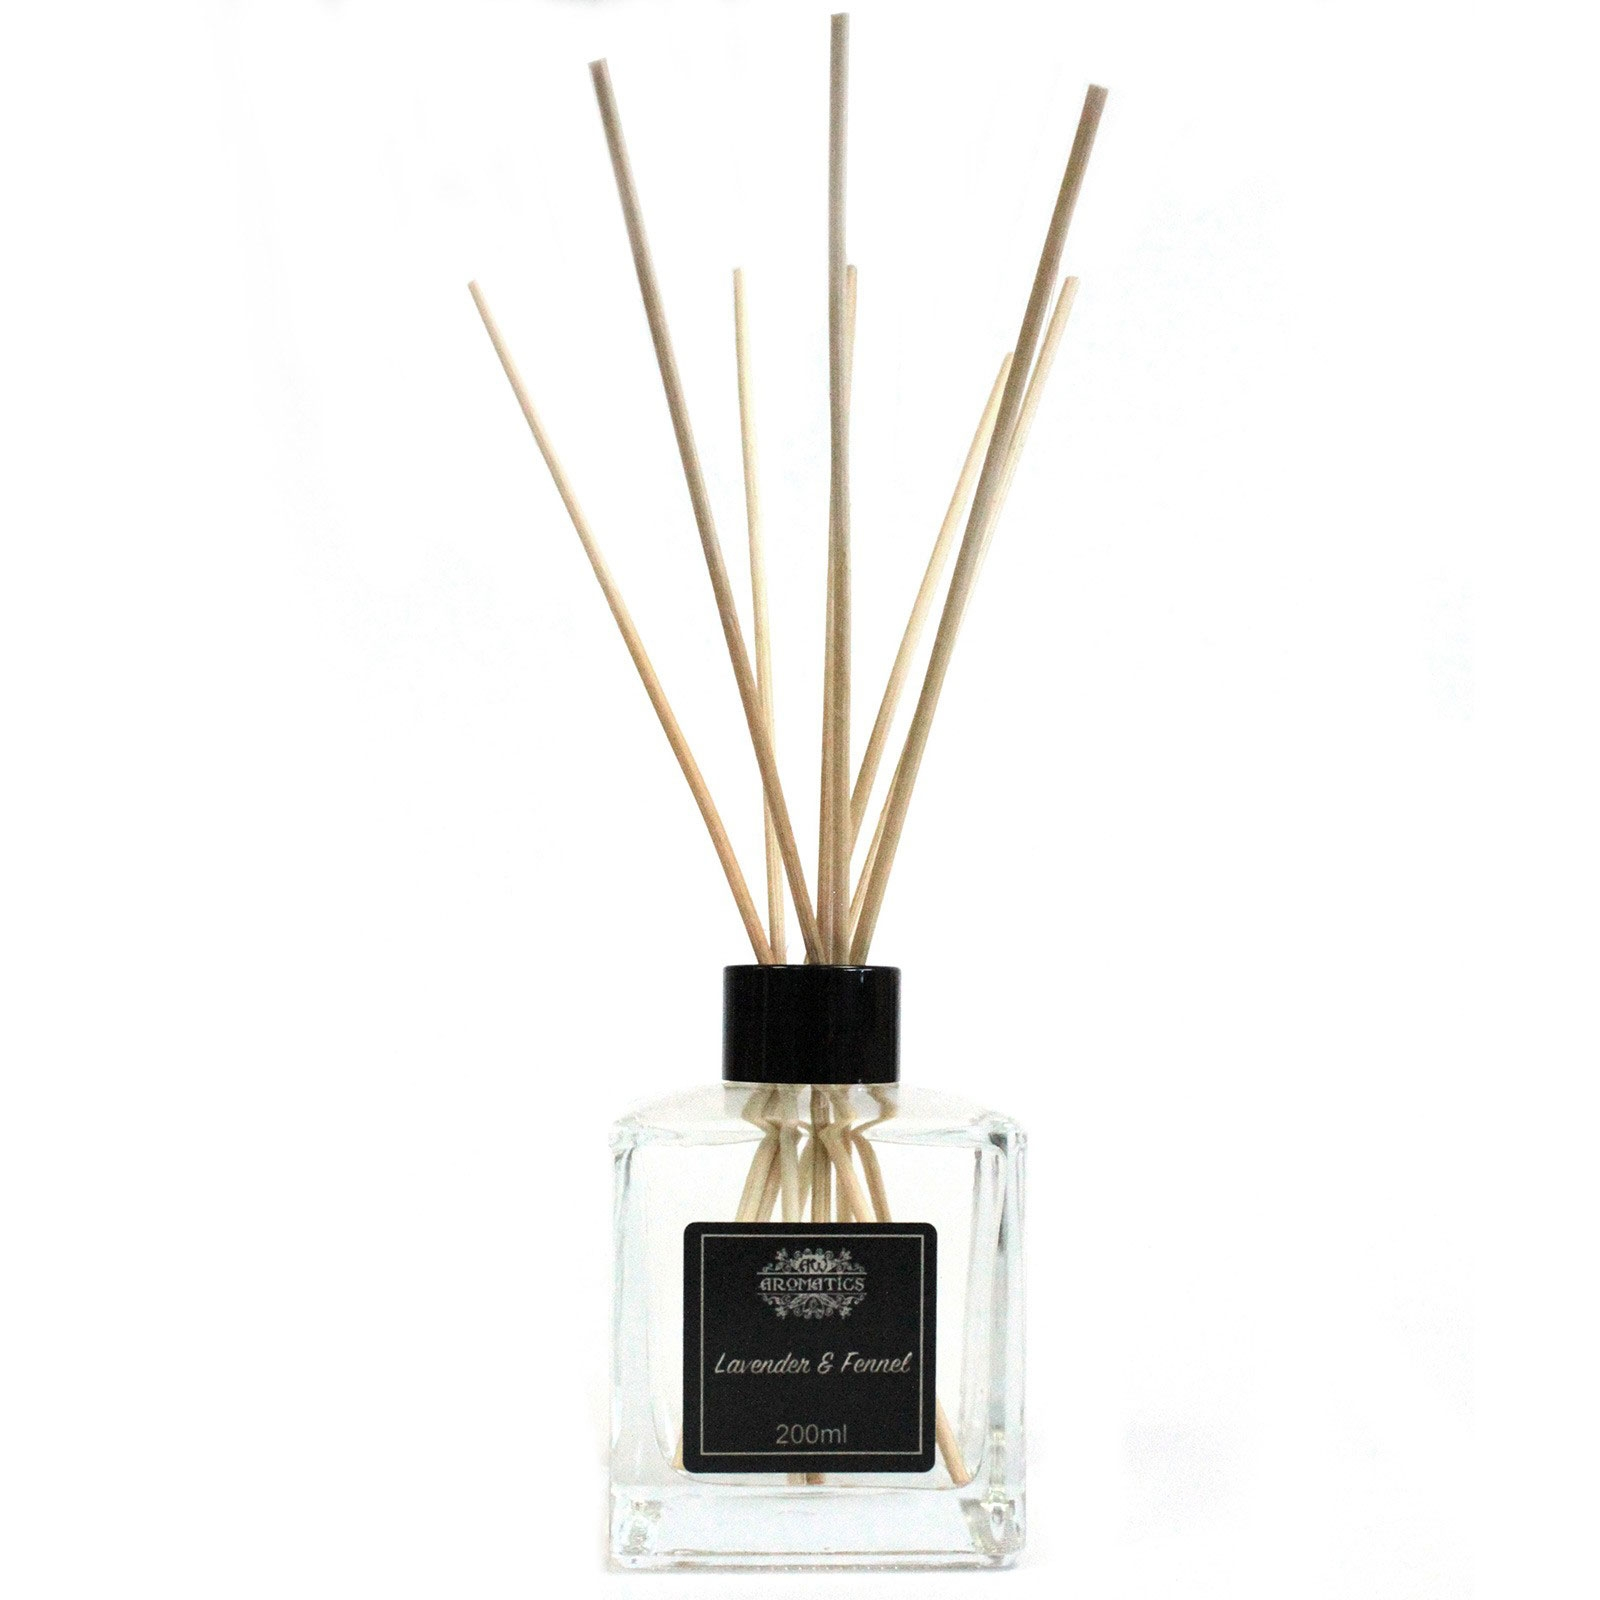 Lavender And Fennel Reed Diffuser 200ml